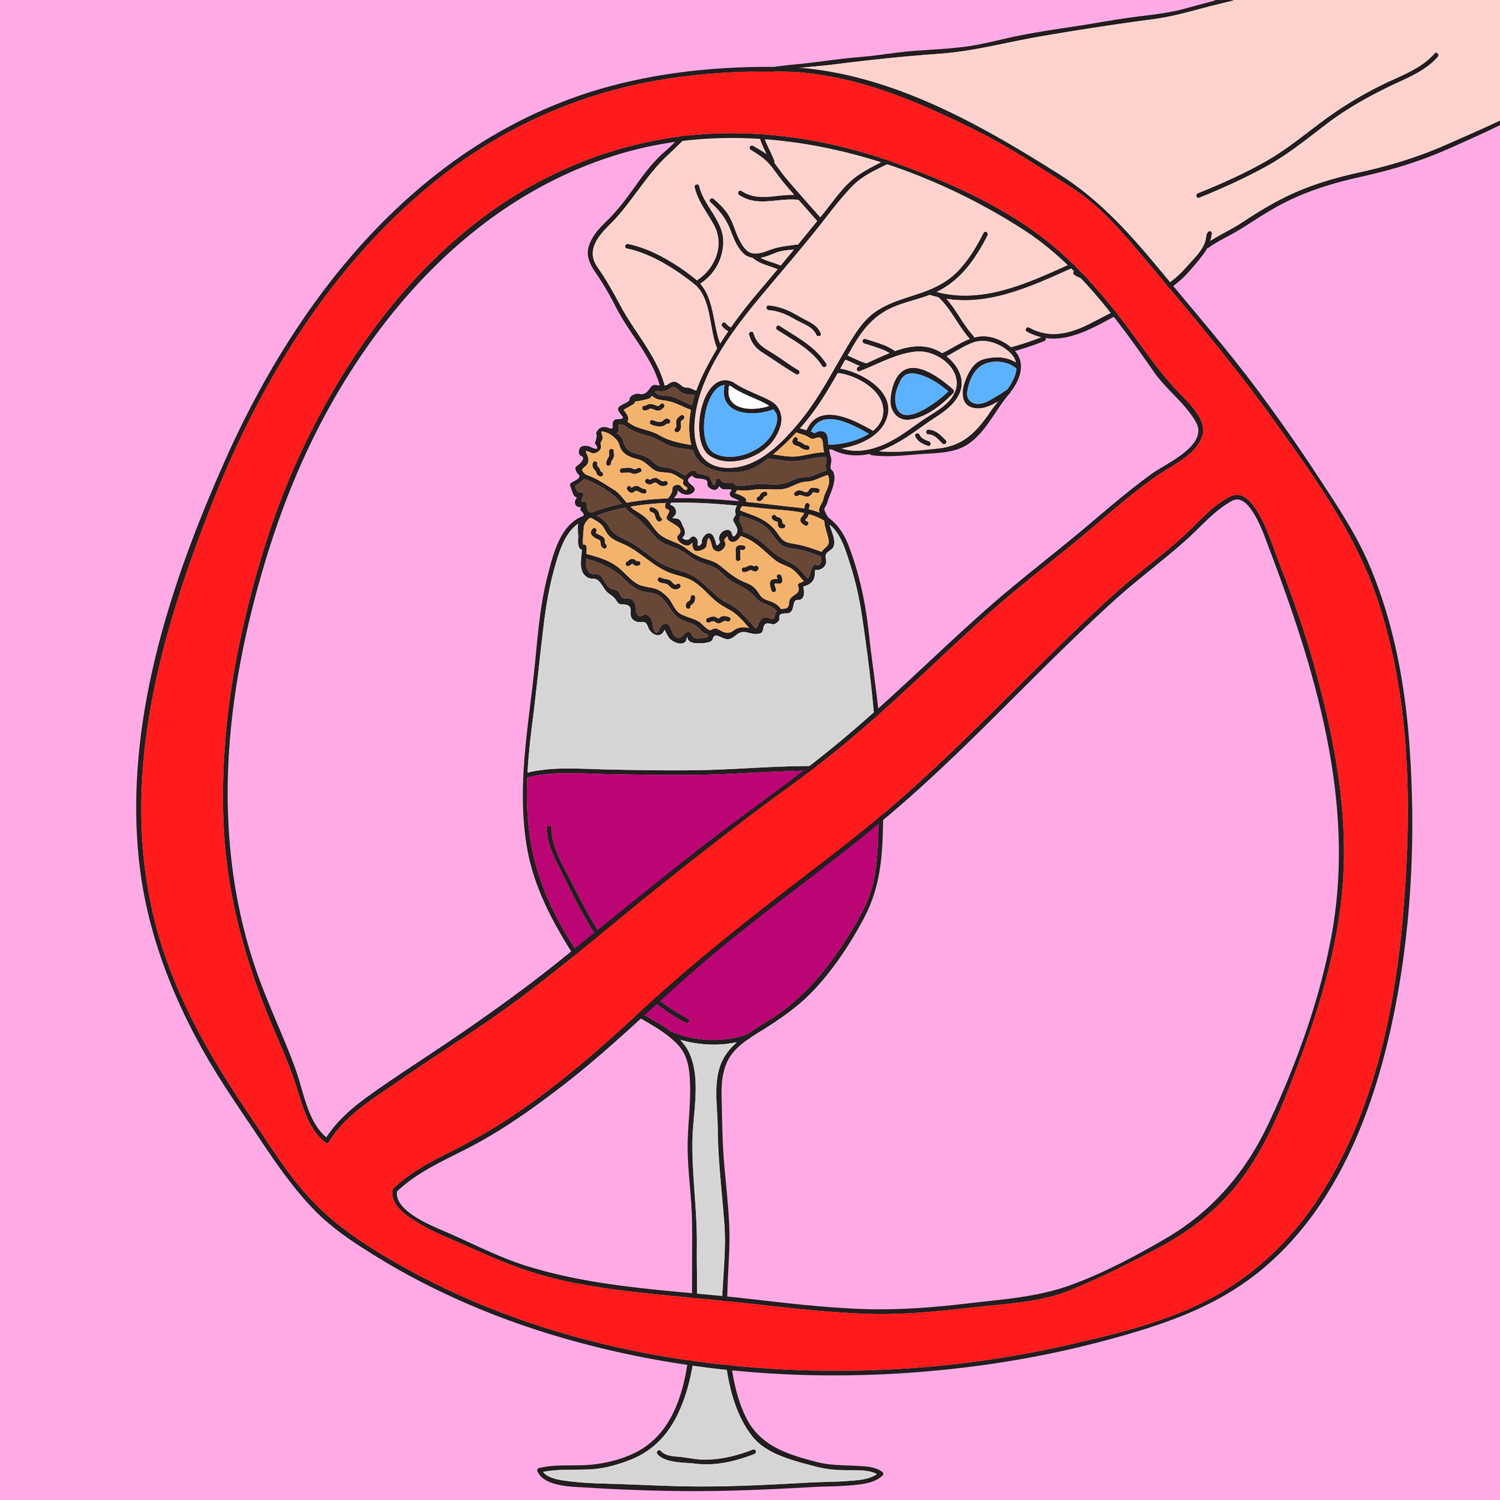 Girl Scout Cookies and Wine: Into the Heart of Darkness